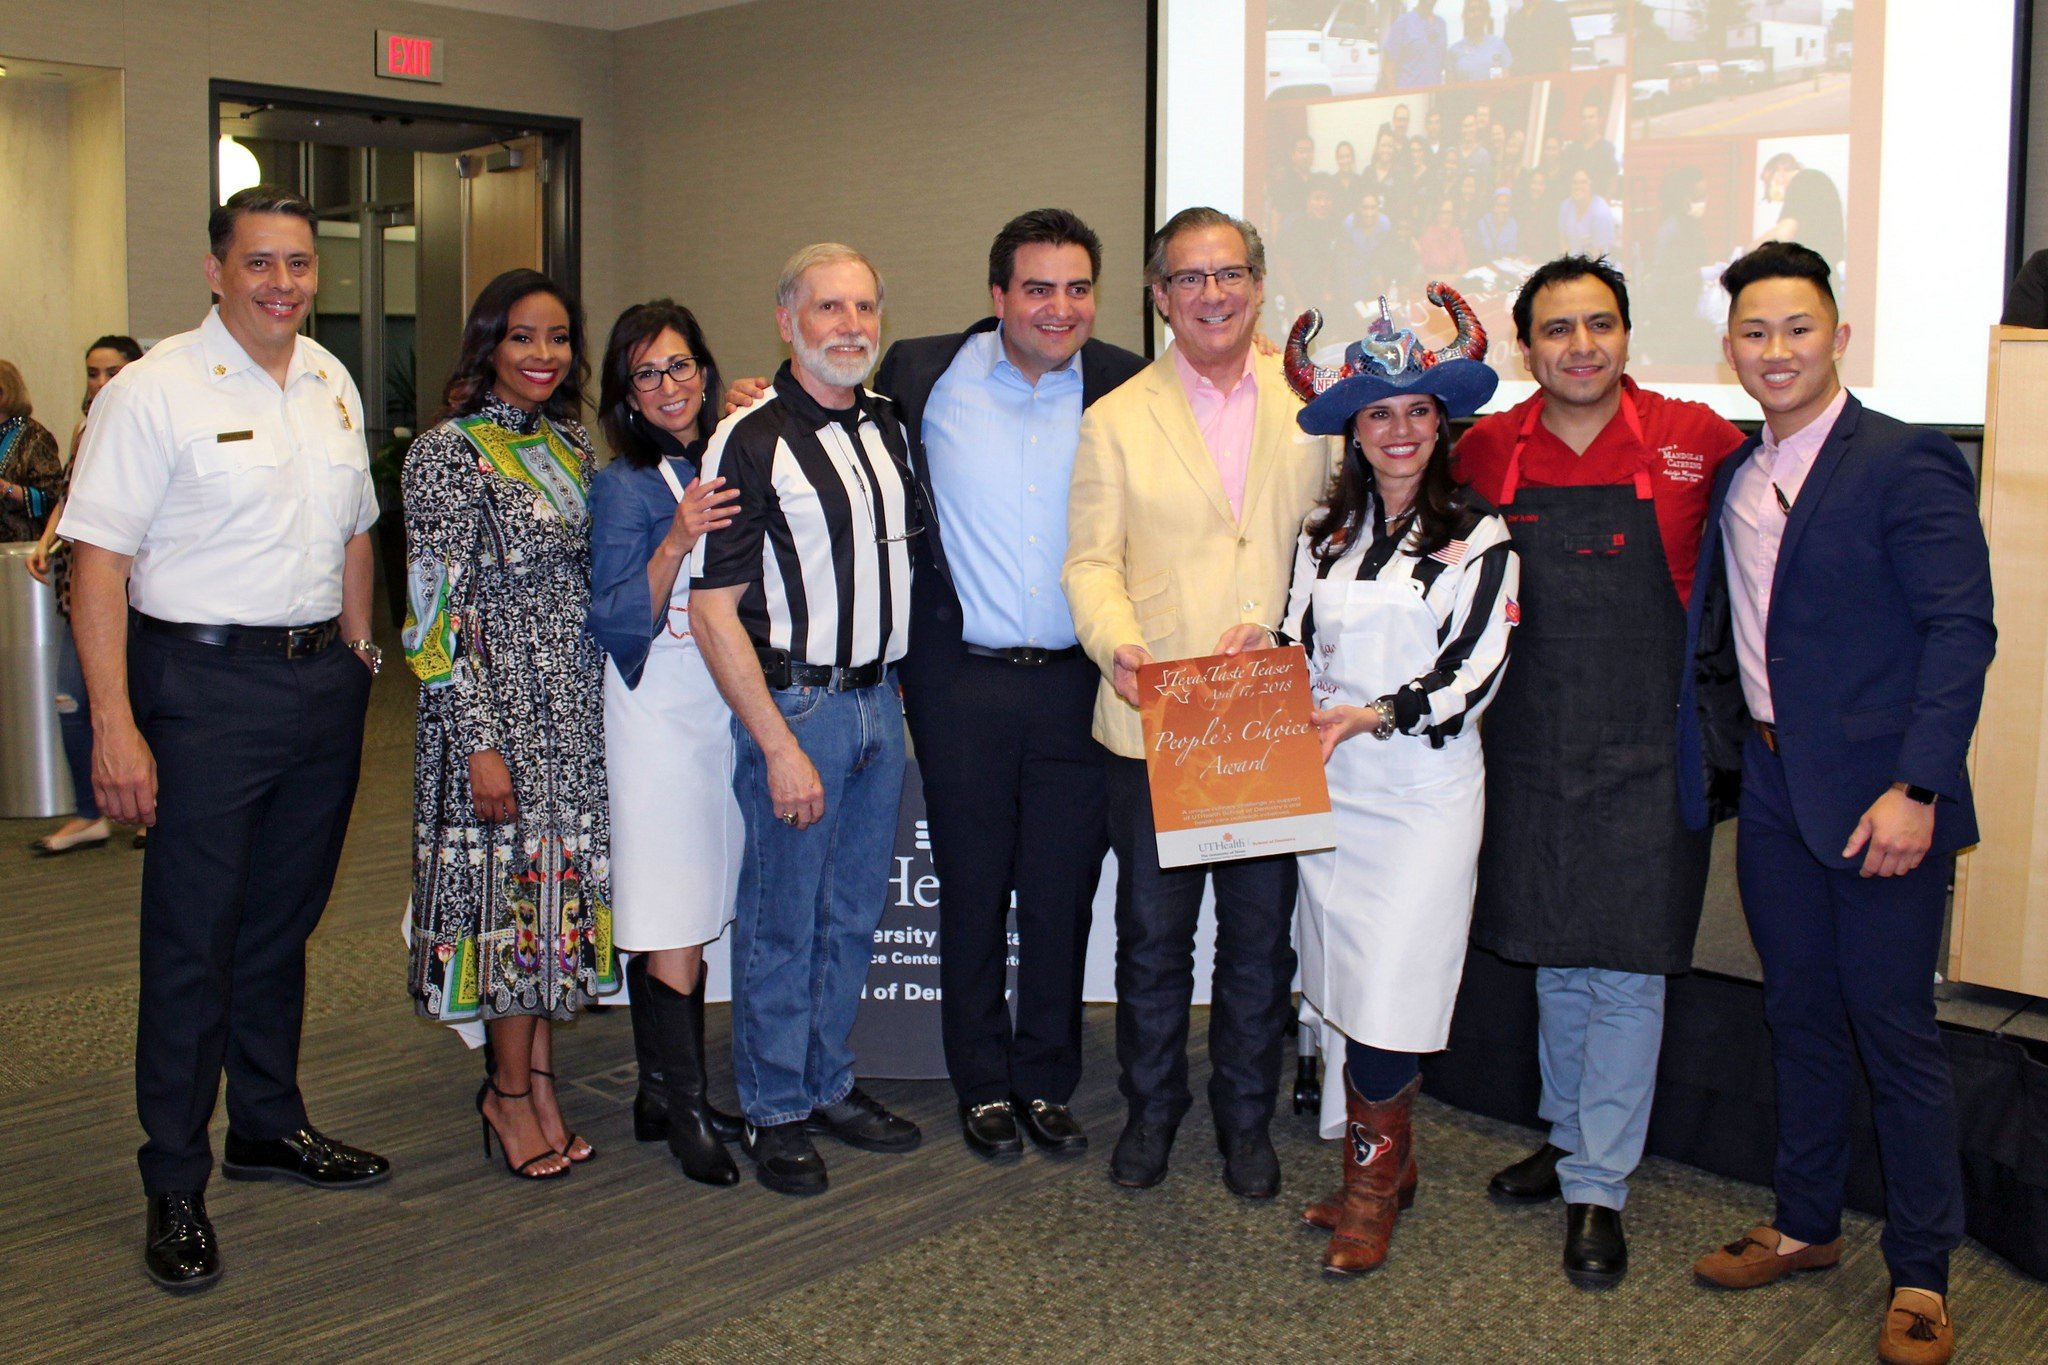 The judges and hosts of the Texas Taste Teaser present the People's Choice Award to Mandola's Catering.